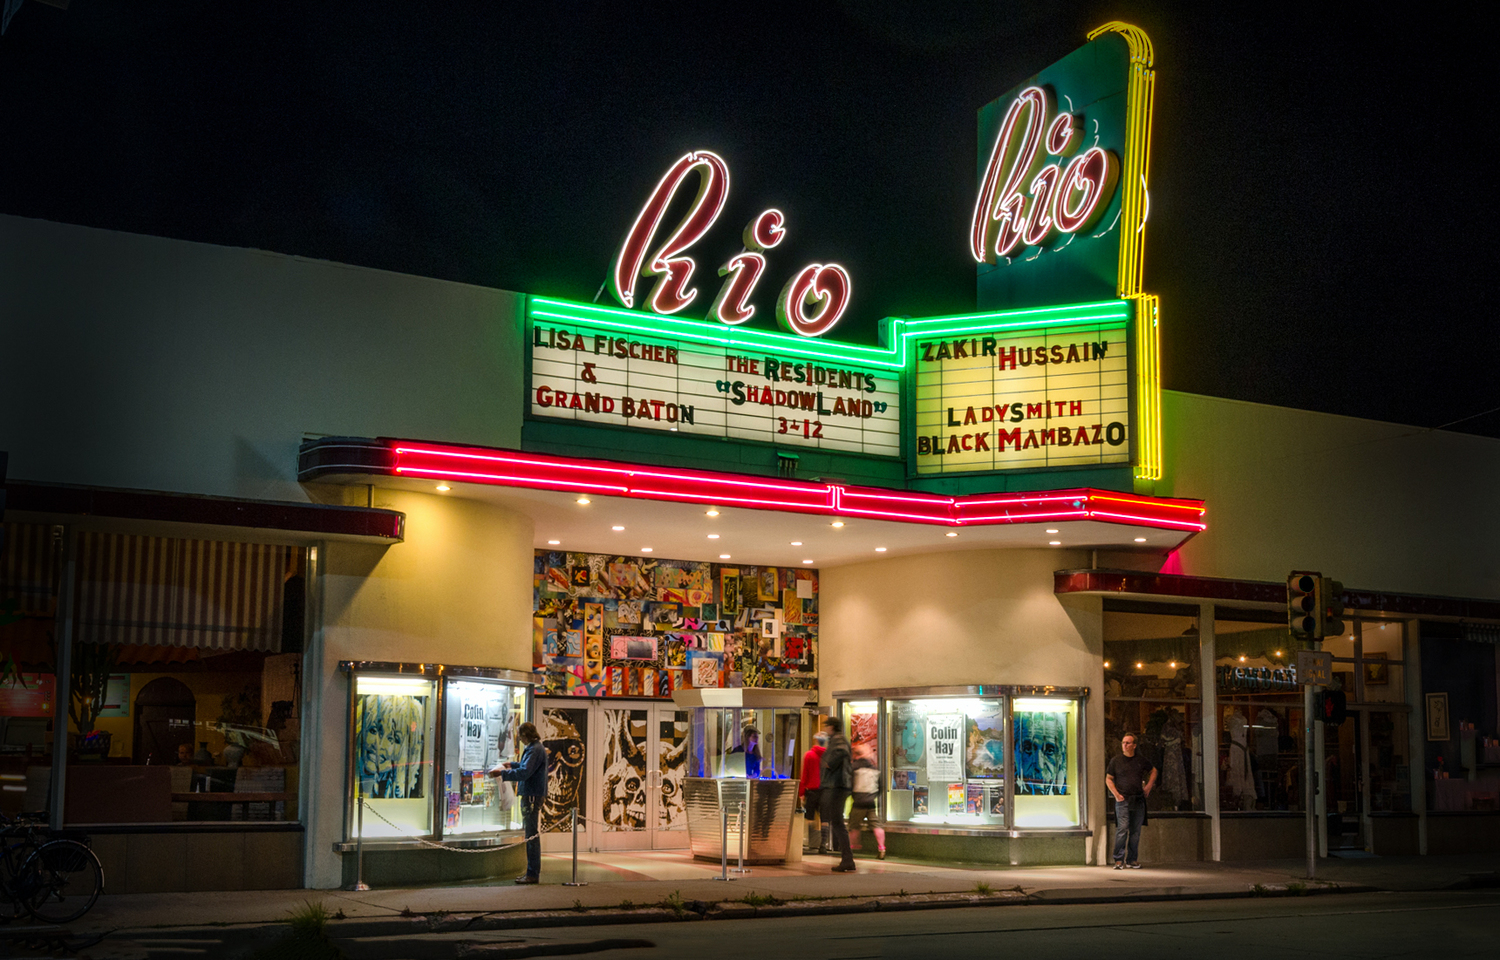 rio theatre - One of the better entertainment venues in Santa Cruz, the Rio Theater hosts concerts, stand-up comedy, lectures, movies, and plays. The Rio has live entertainment throughout the year and tends to draw more recognizable musical and comedy acts than other places in Santa Cruz. Since the theater is so close to both Seabright and Downtown, it's a perfect place to catch a show after dinner.